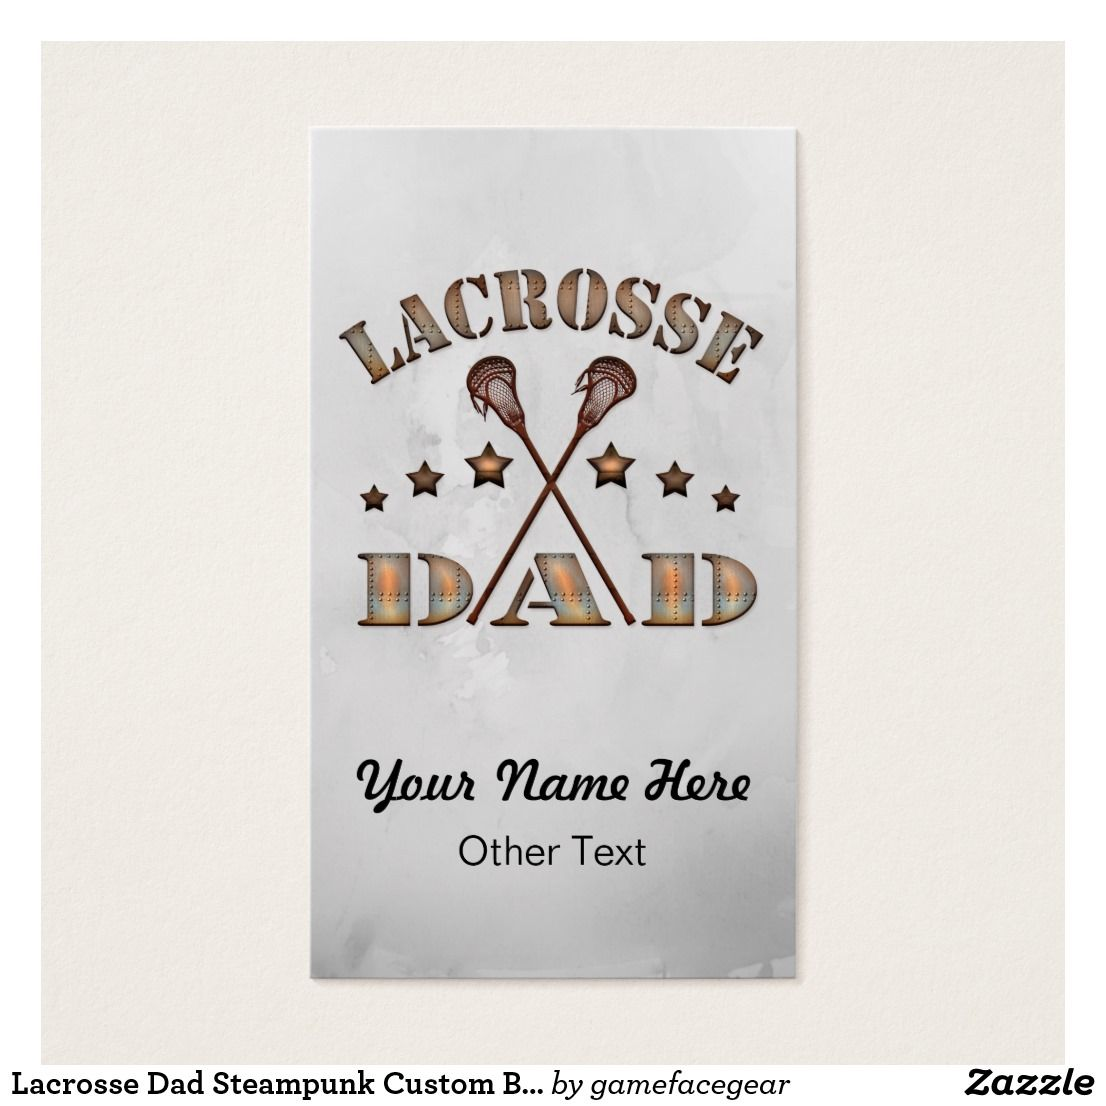 Lacrosse Dad Steampunk Custom Business Cards. Easy to customize ...